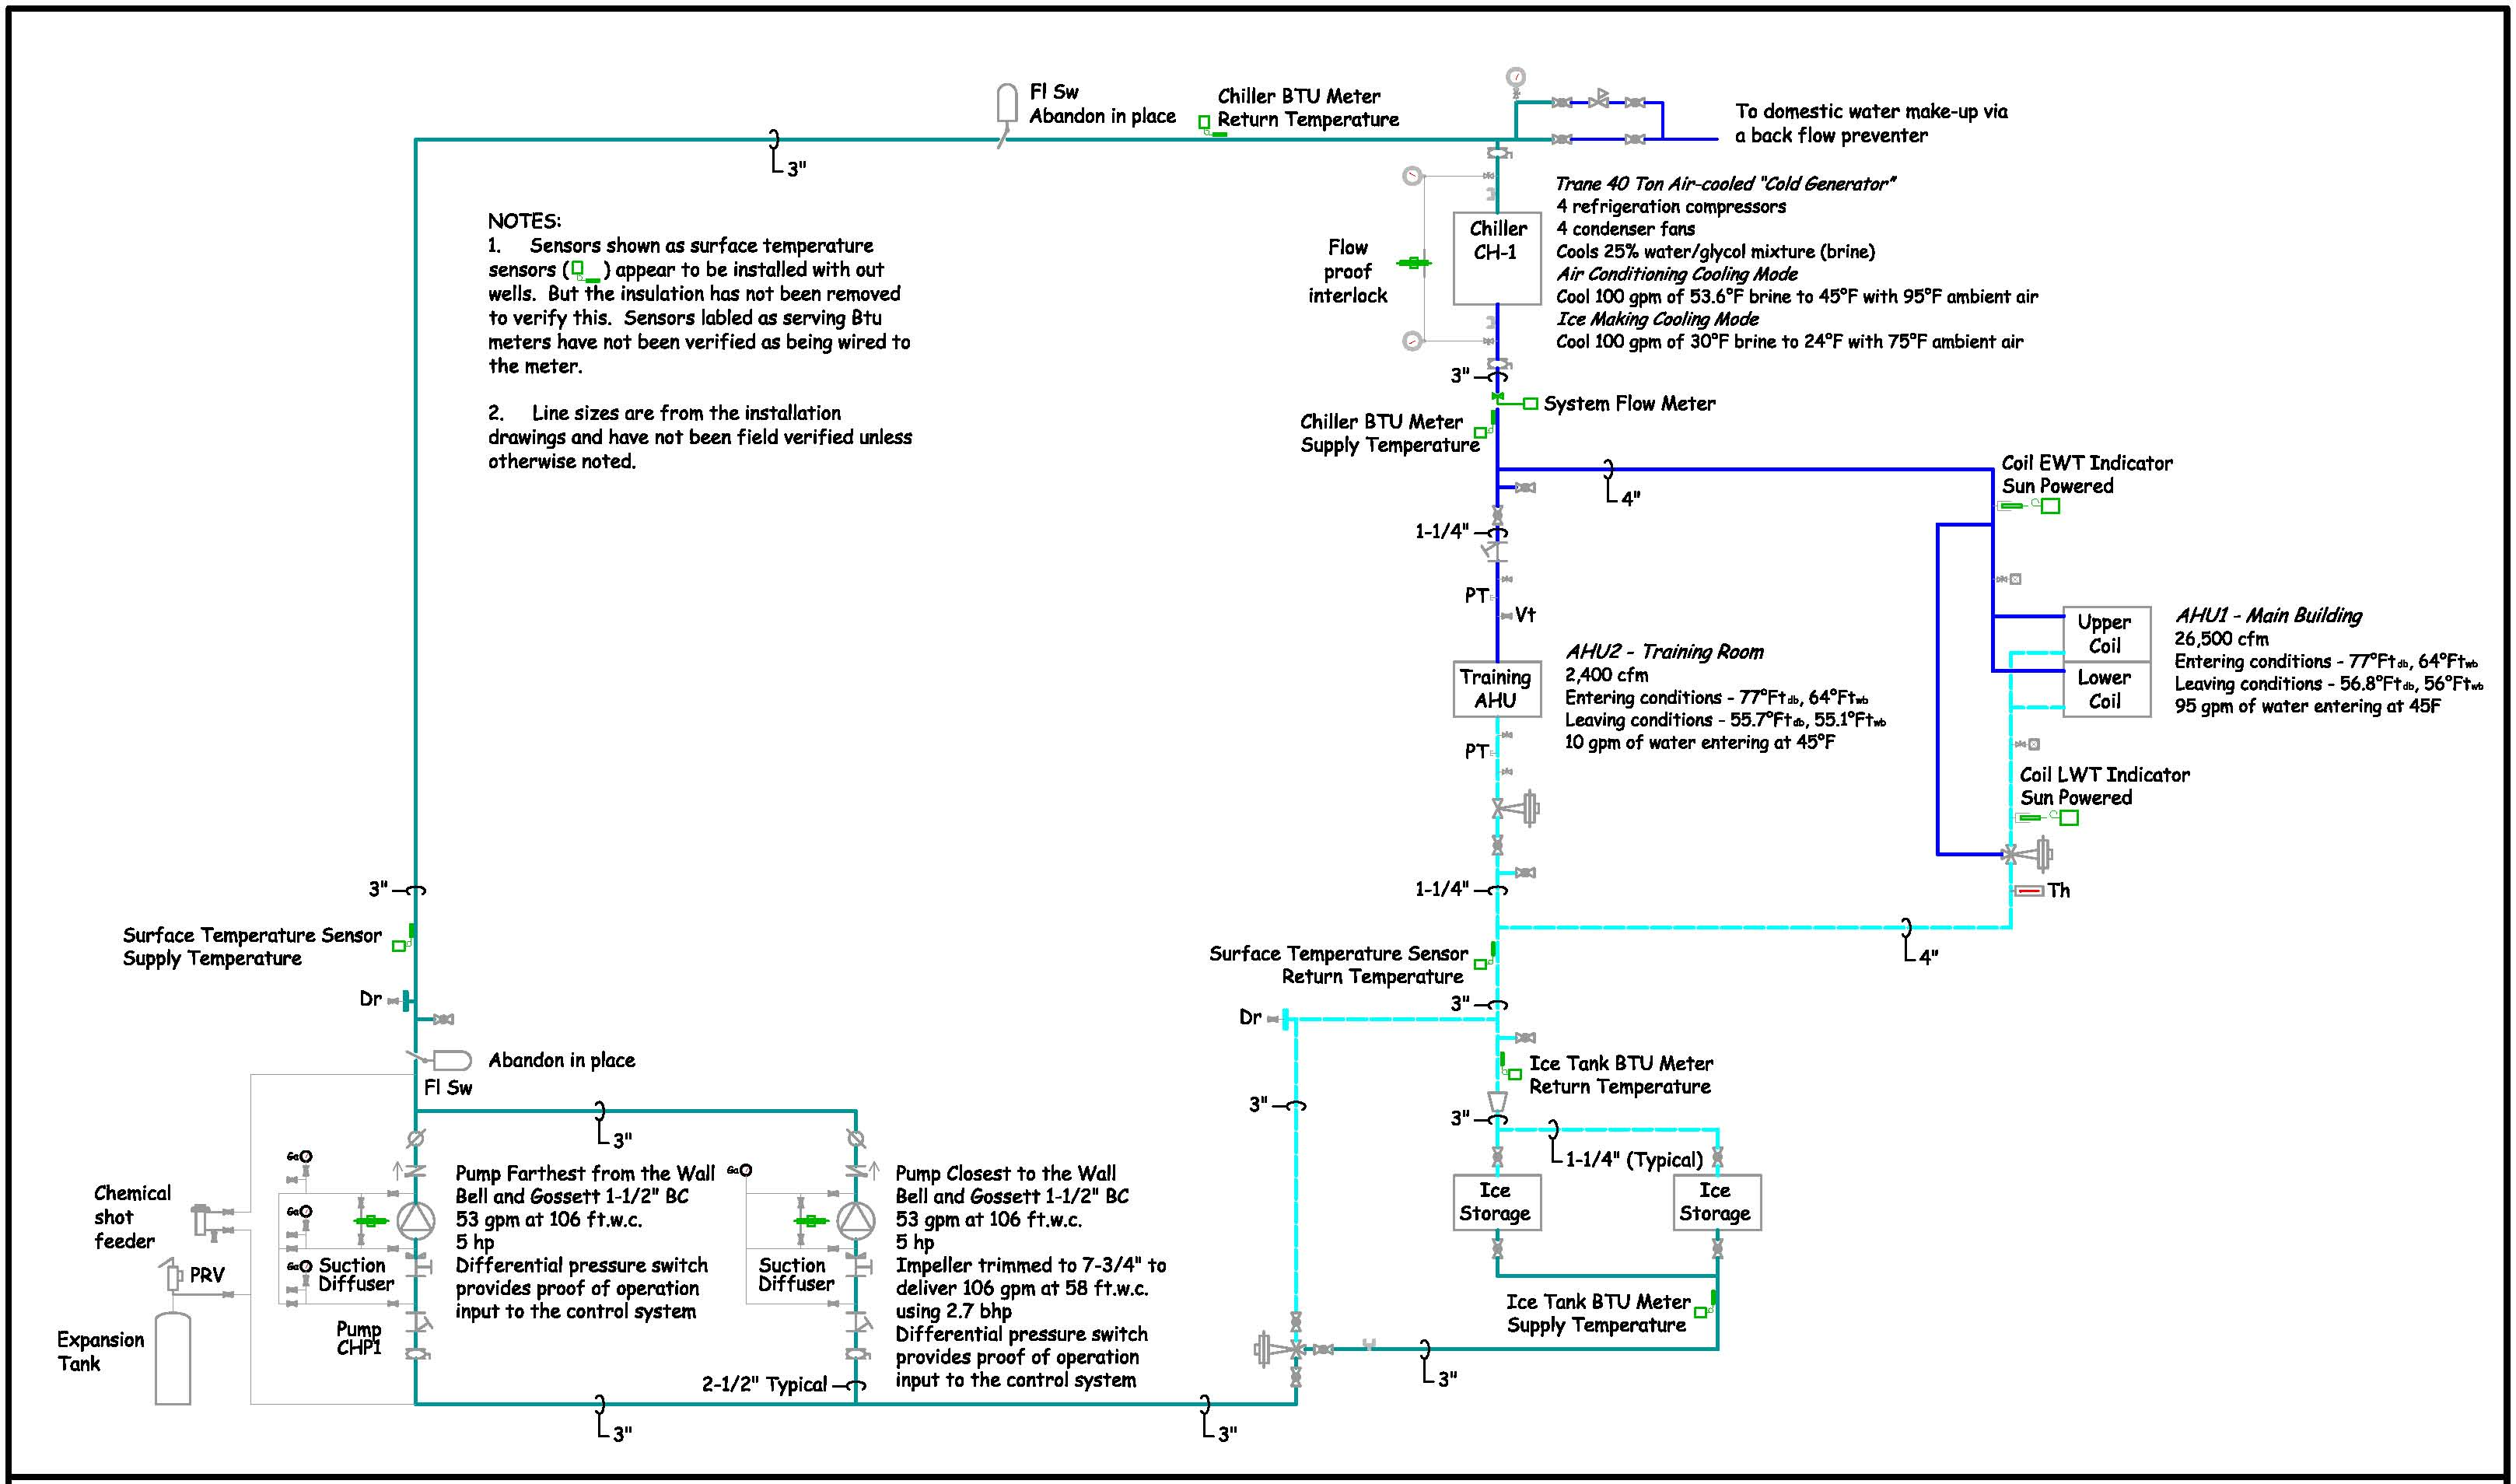 Chilled Water System Schematic http://av8rdas.wordpress.com/2010/08/22/system-diagrams-an-industry-concept-but-not-an-industry-standard/